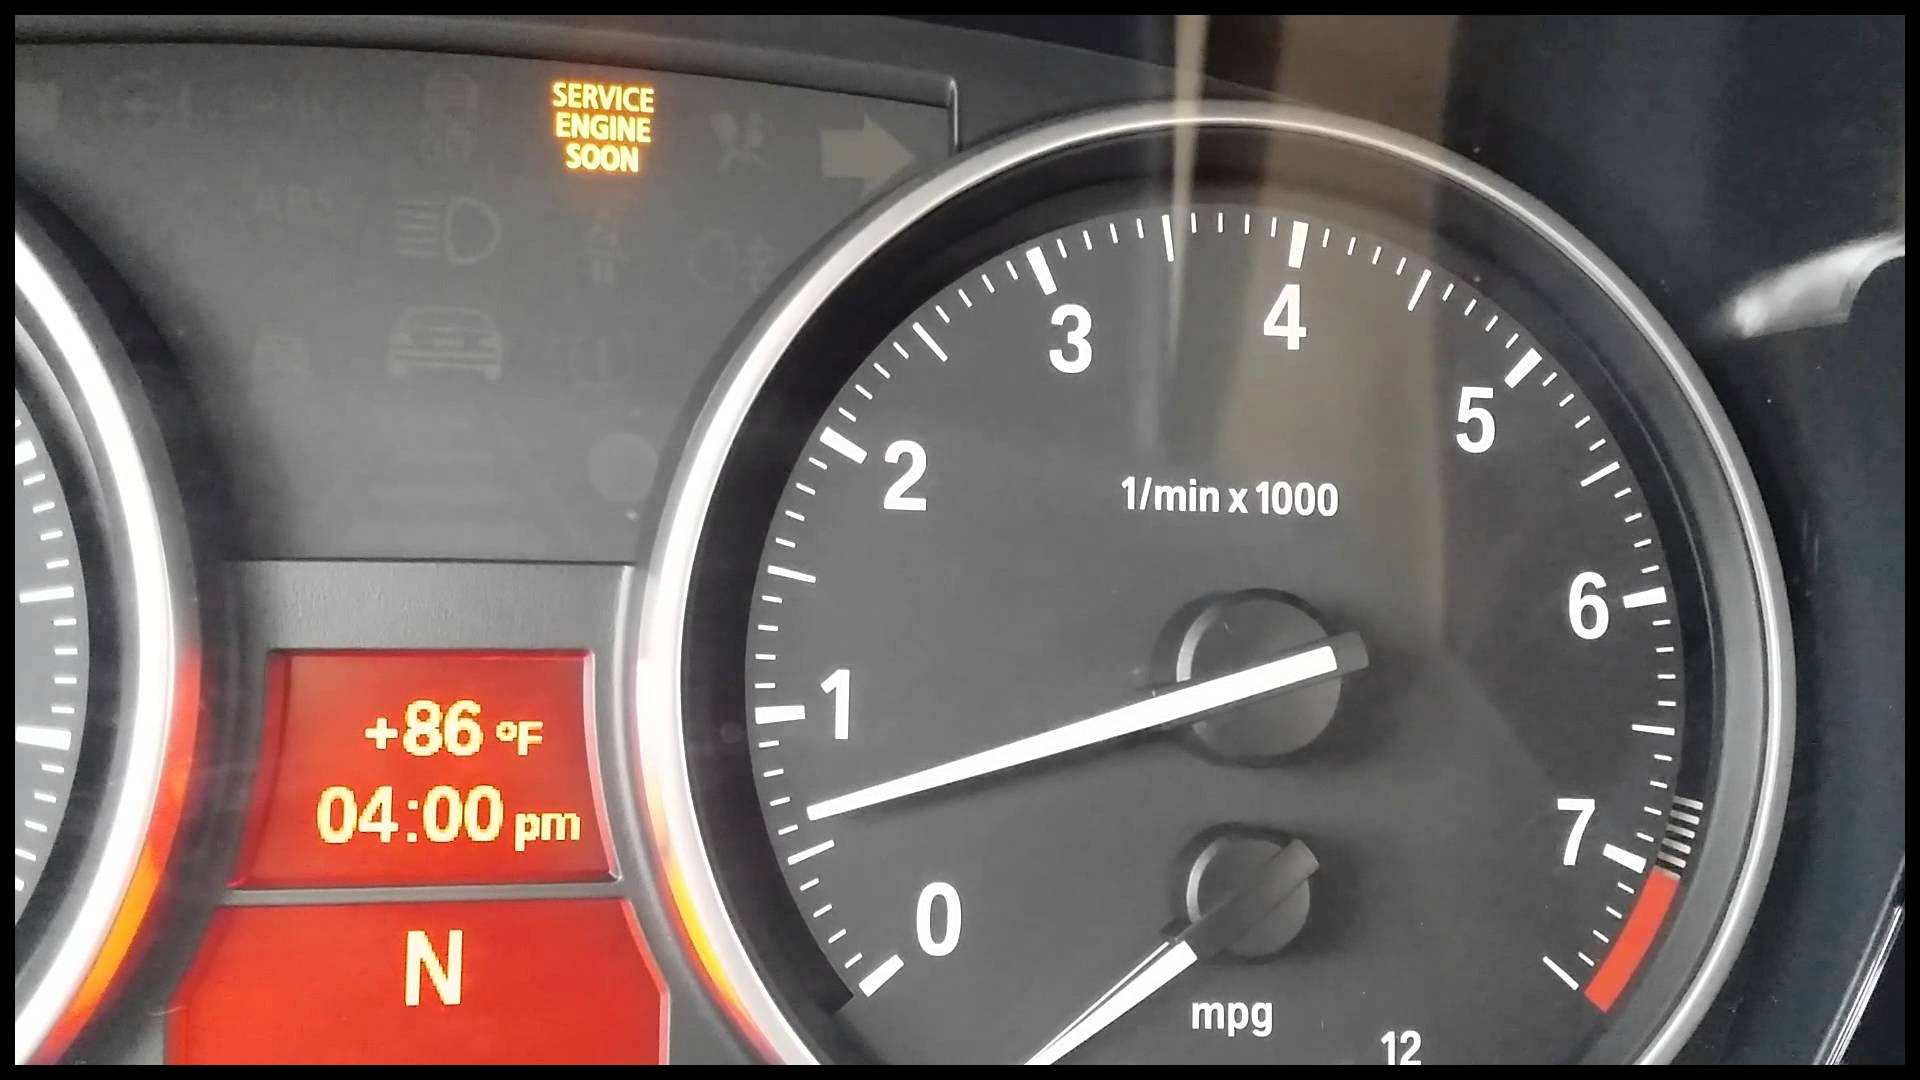 Engine running rough and Check Engine Light on after BMW of Macon repair